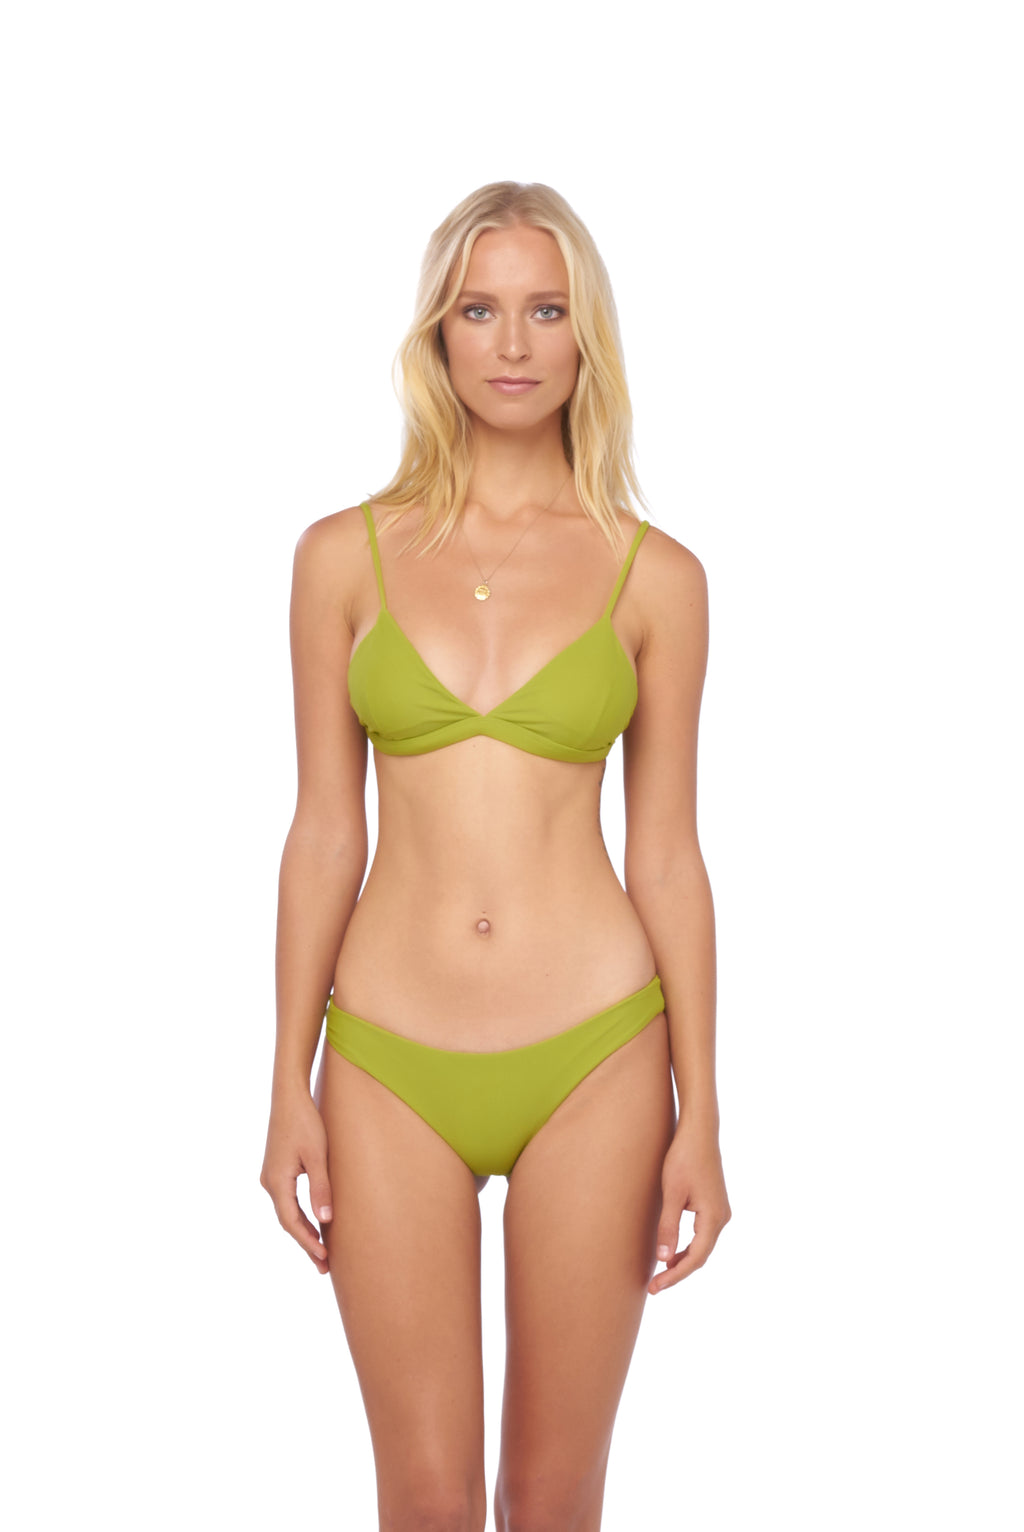 Storm Swimwear - Mallorca - Triangle Bikini Top with removable padding in Golden Olive